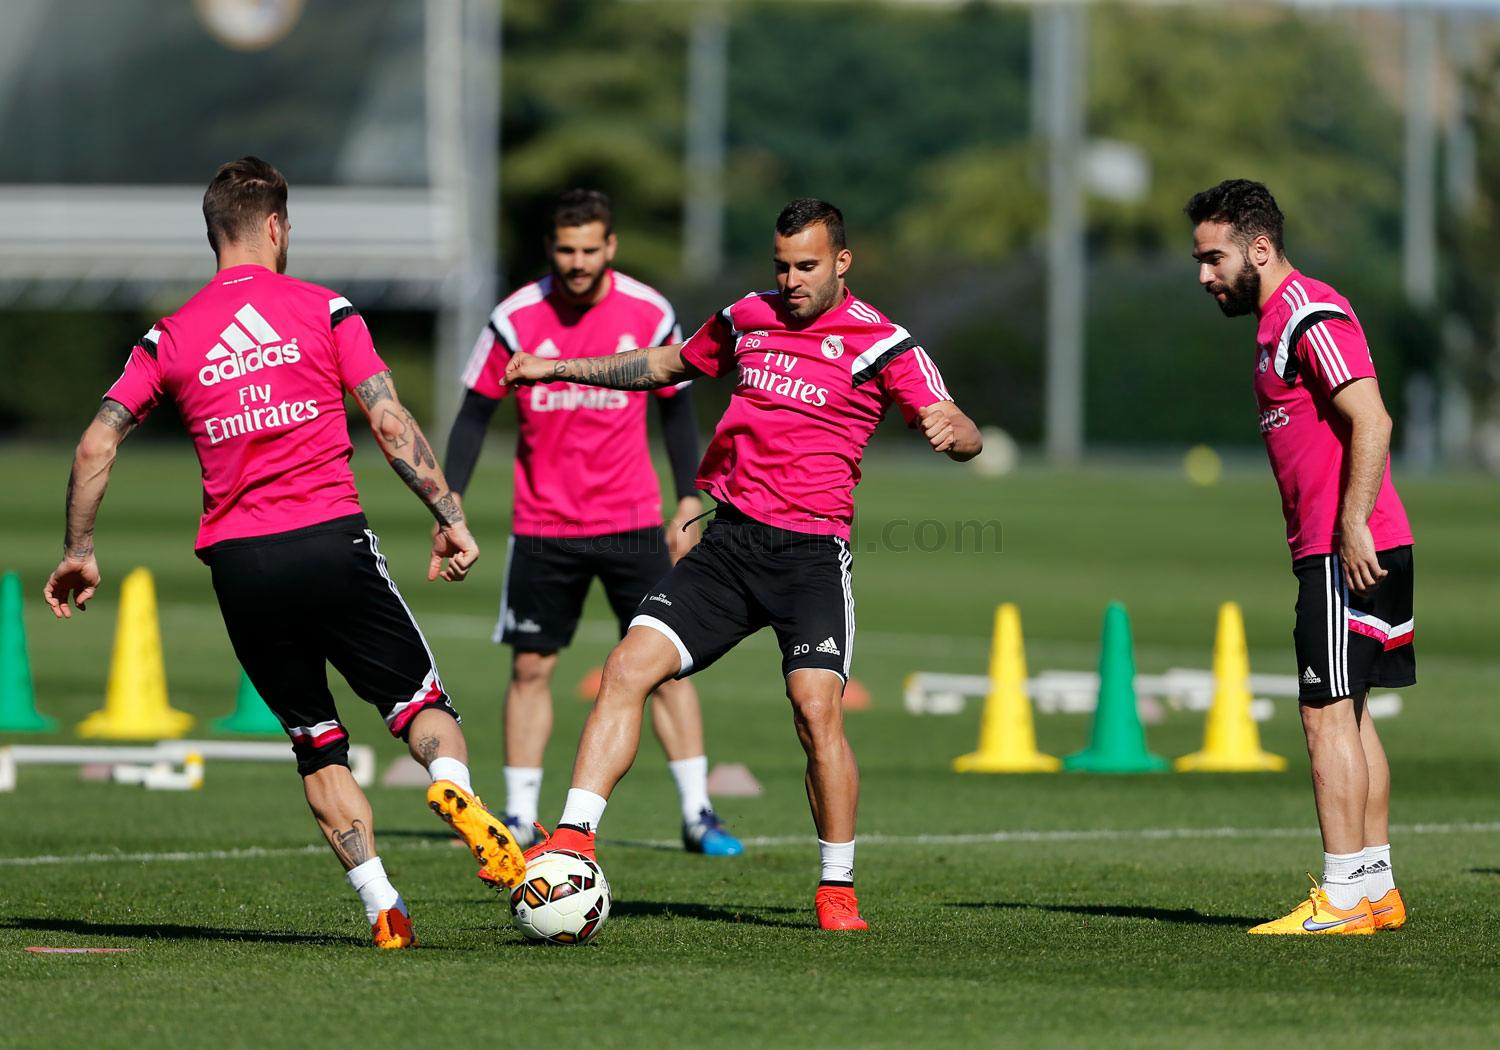 Real Madrid - Entrenamiento del Real Madrid - 04-04-2015